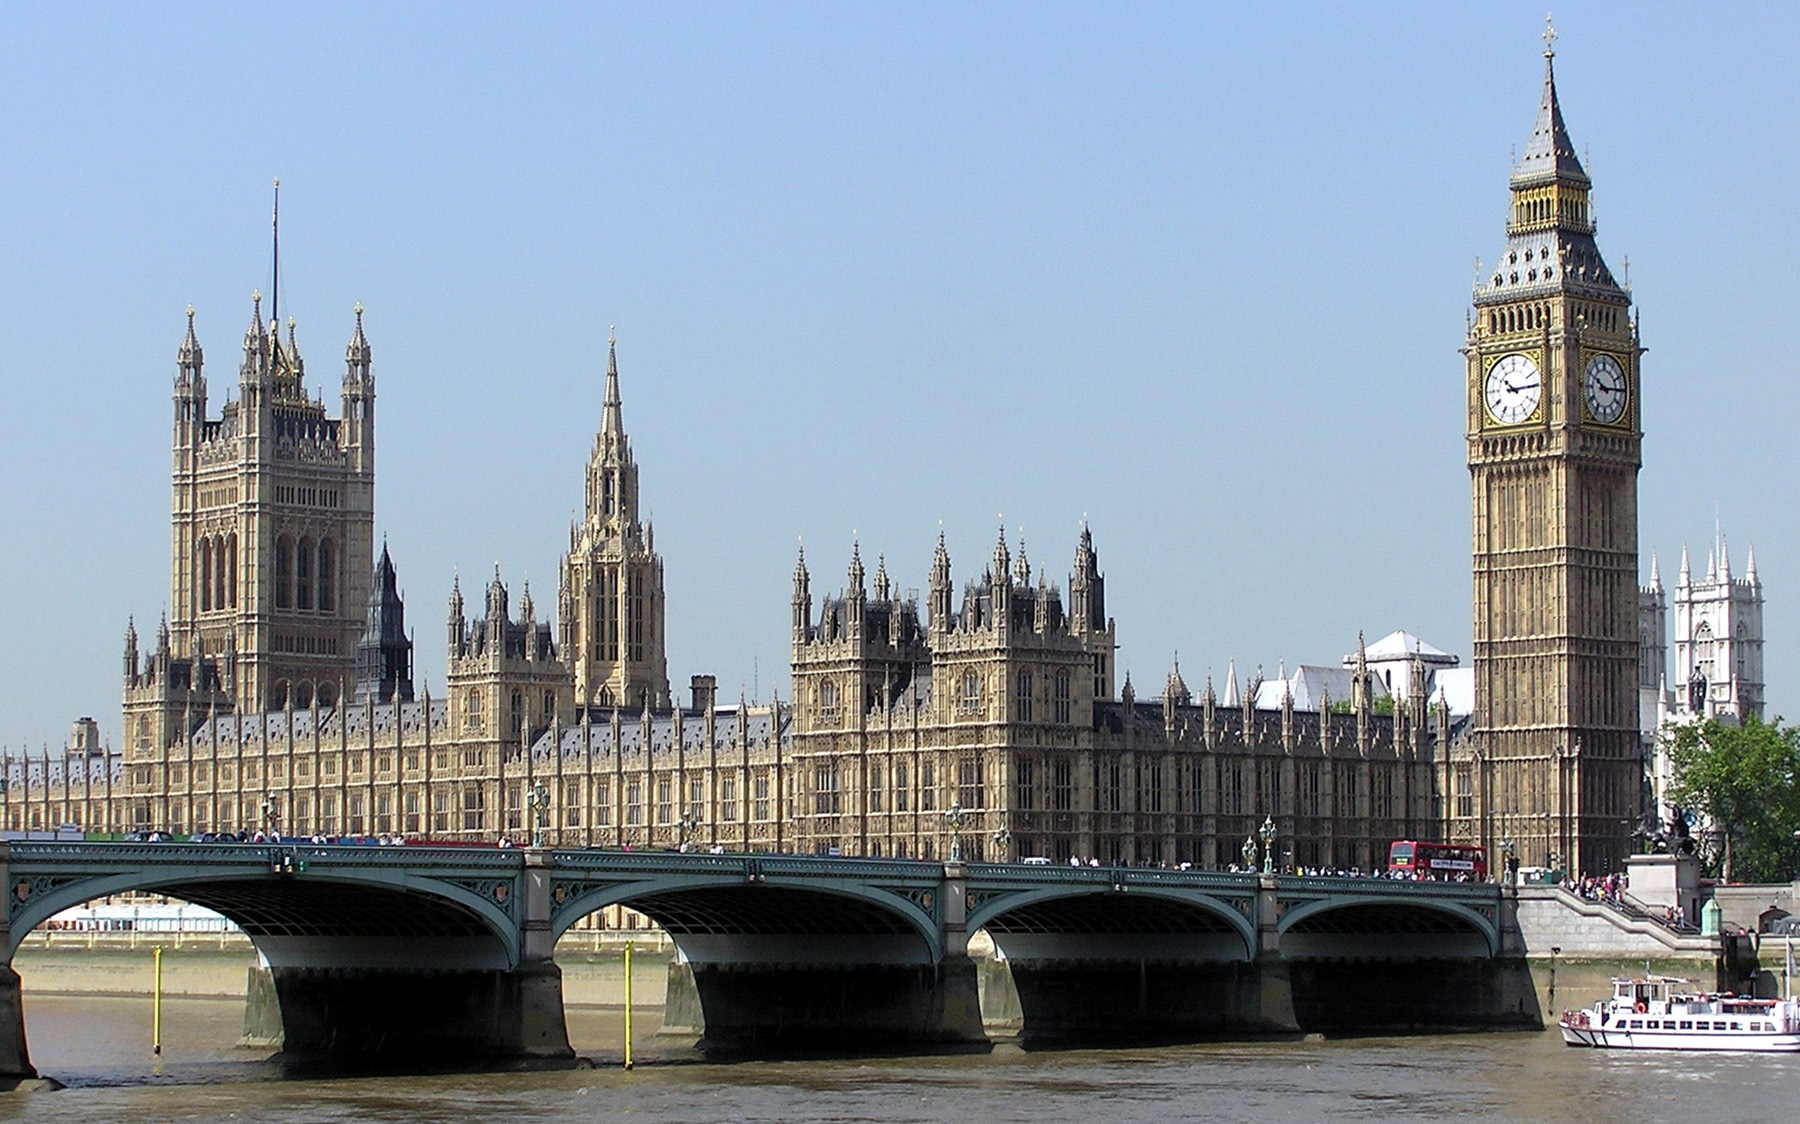 houses-of-parliament, UK